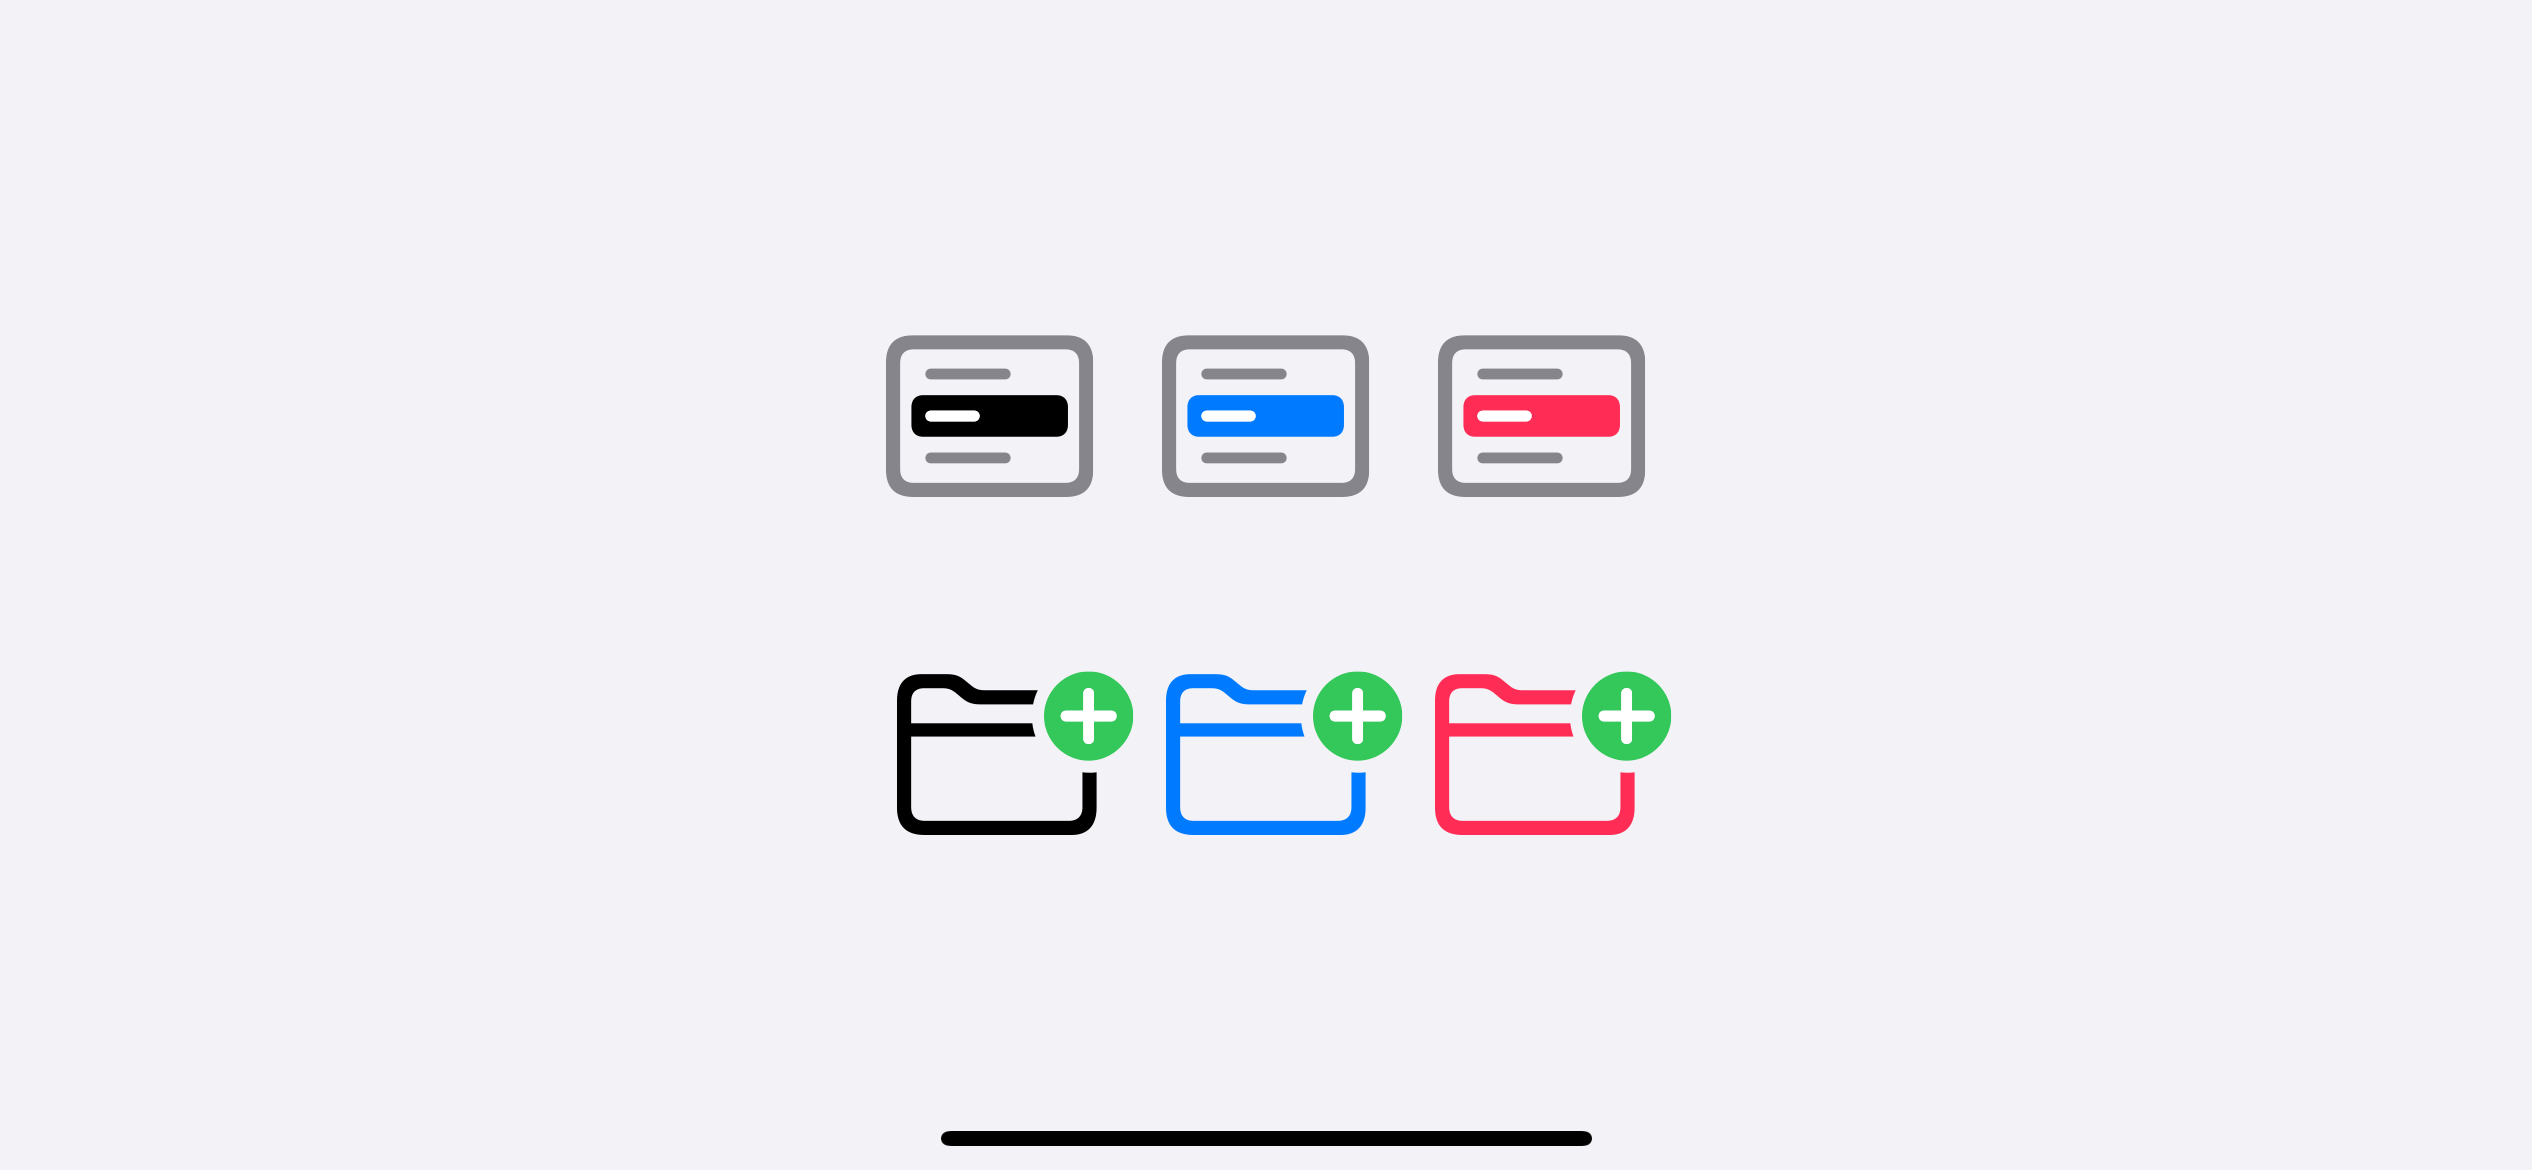 We can override some part of multicolor symbols.